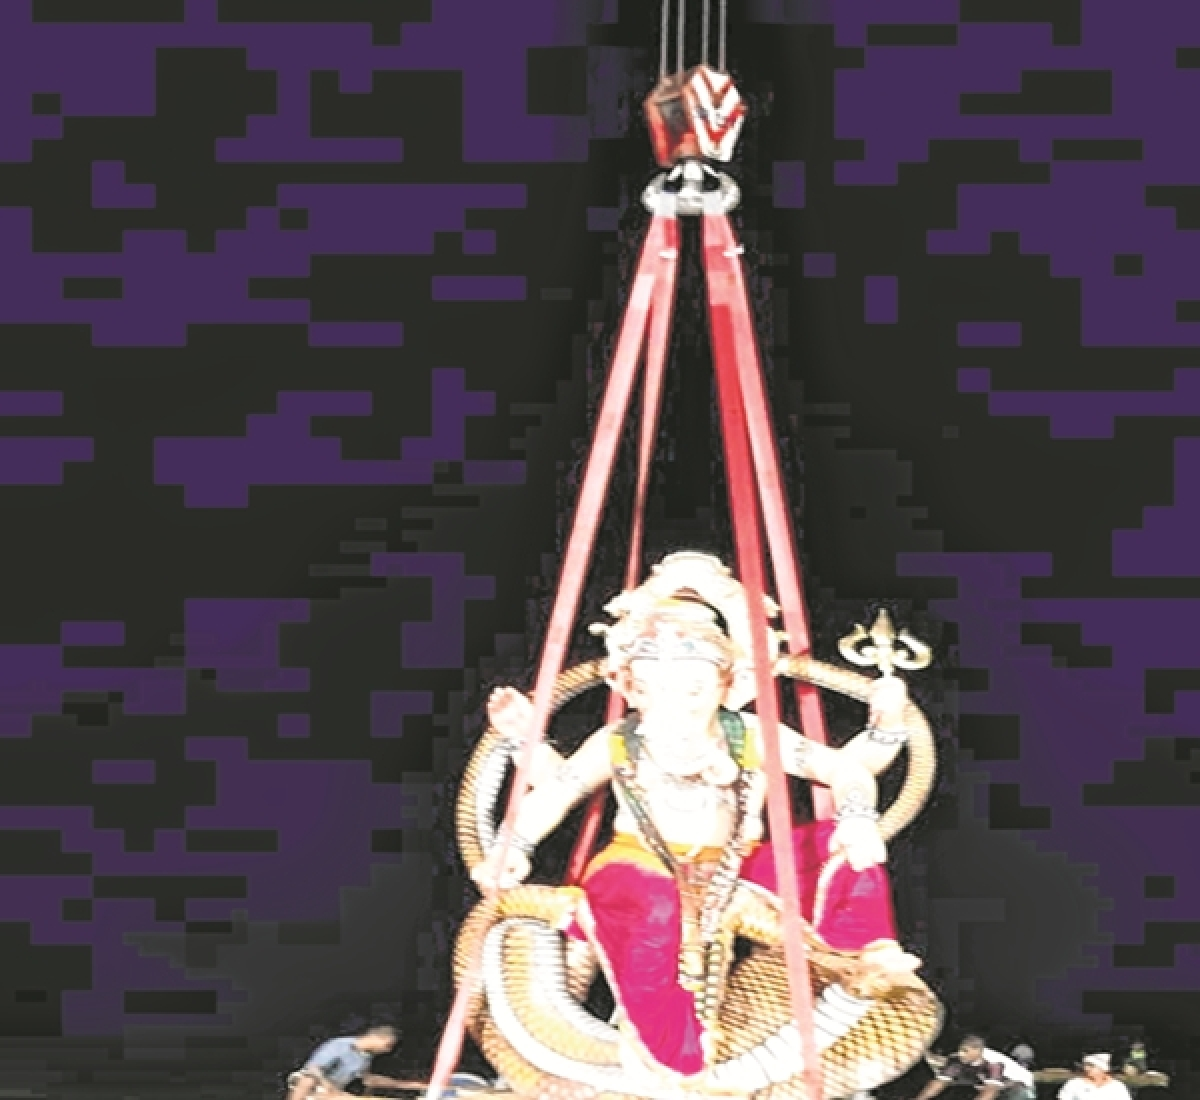 Mumbai: Illegal stalls, banners rule roost